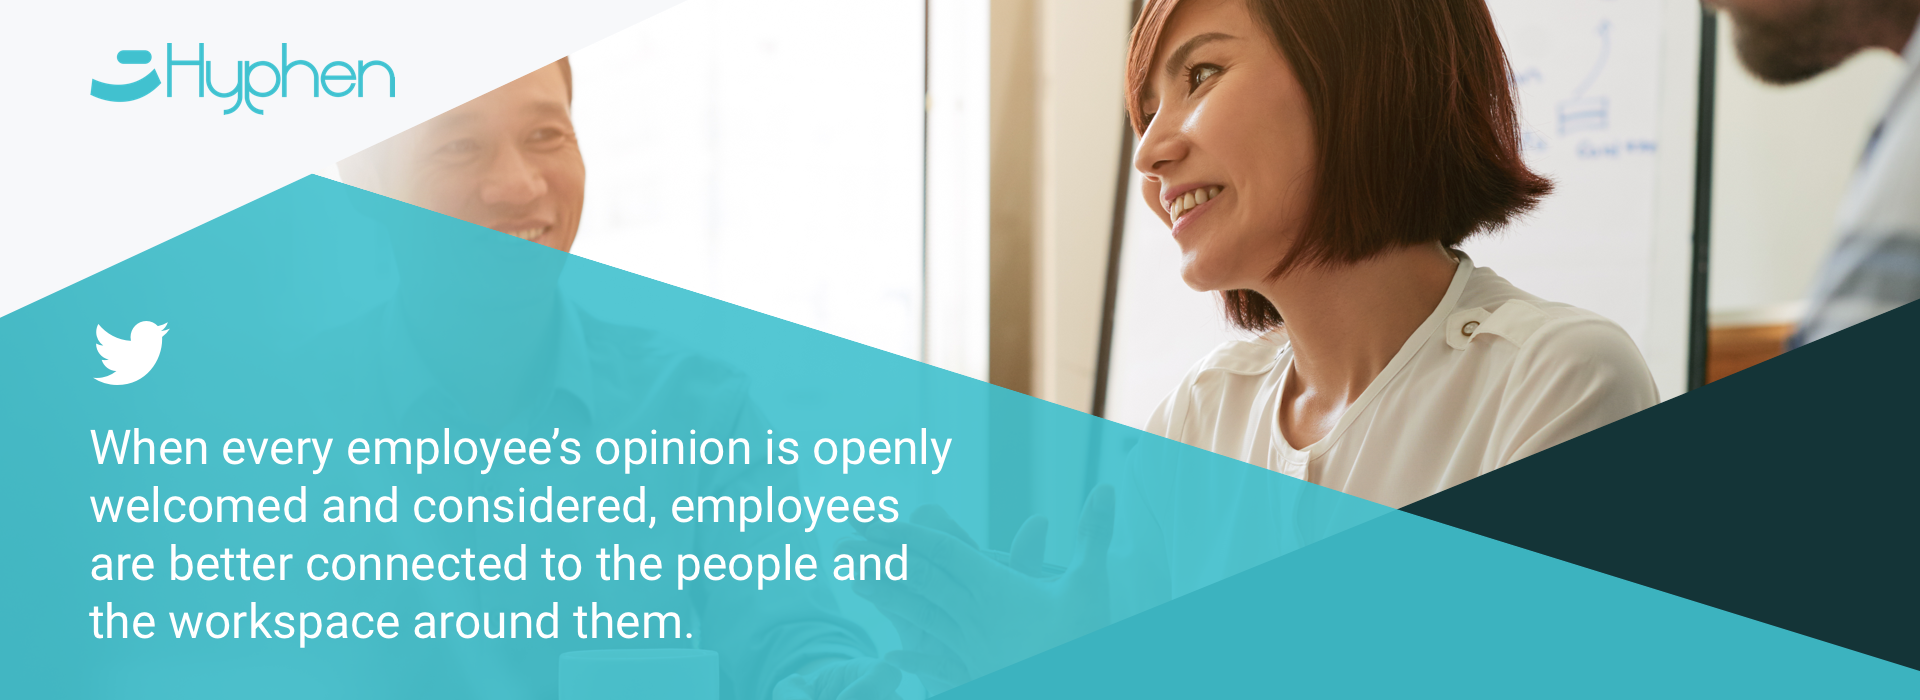 When every employee's opinion is openly welcomed and considered, employees are better connected to the people and the workspace around them.